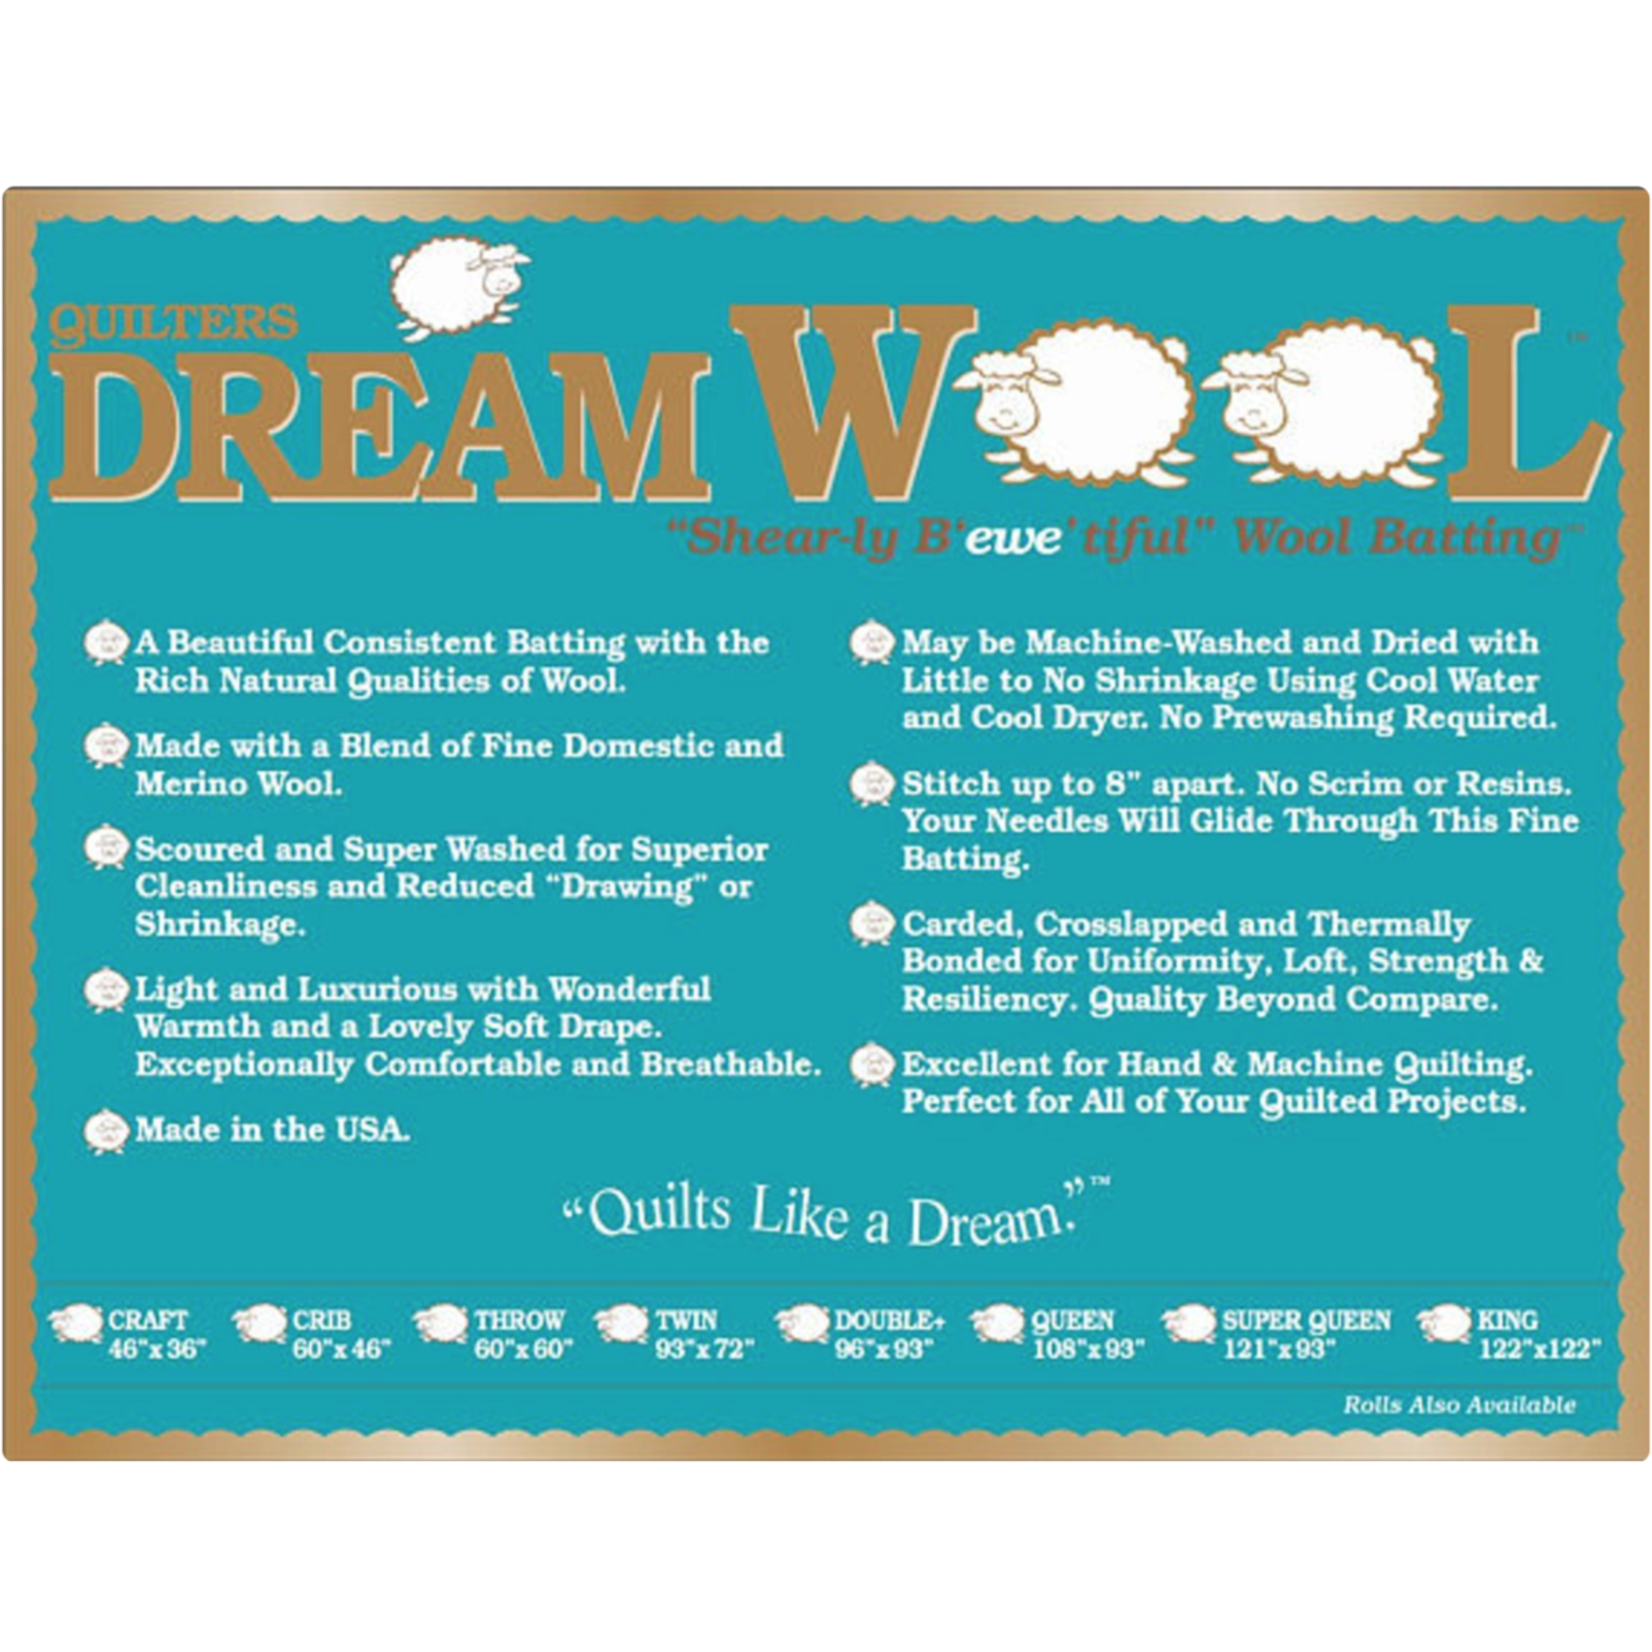 DREAM COTTON DREAM WOOL SUPER QUEEN